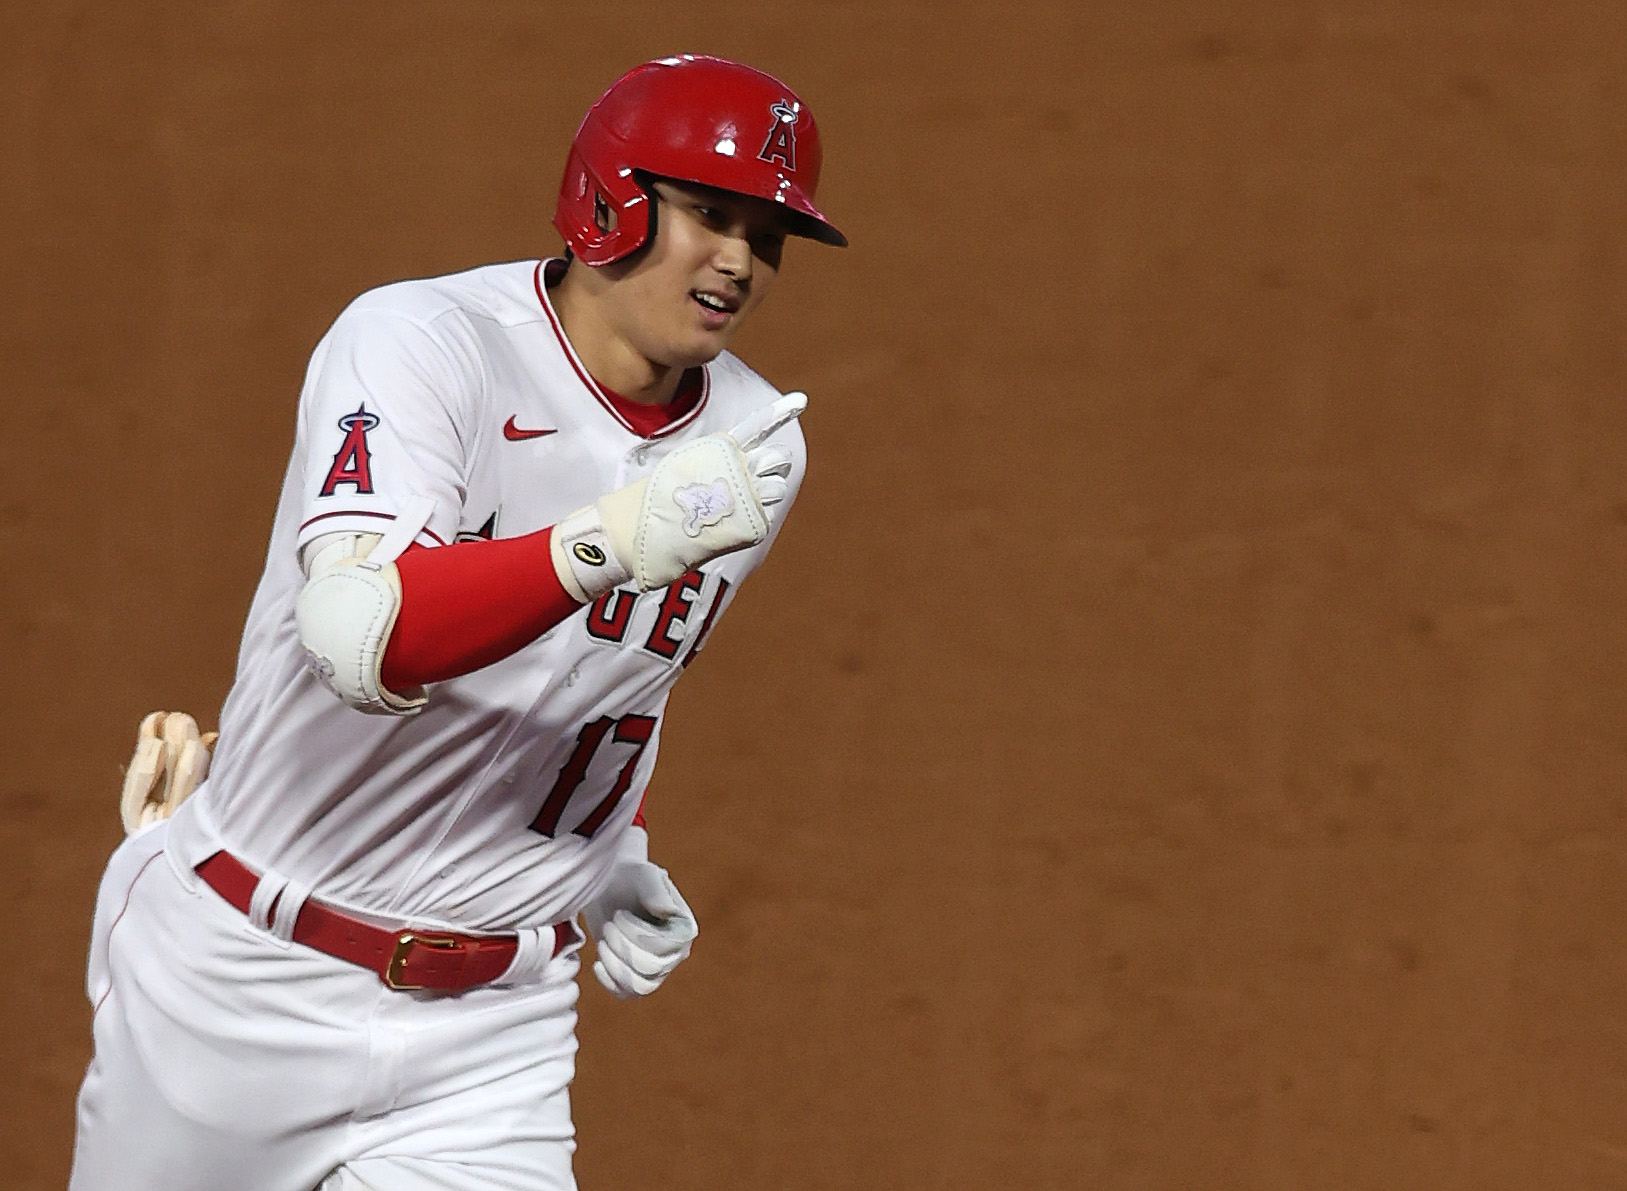 Shohei Ohtani is 1st player in MLB history named All-Star as hitter and pitcher